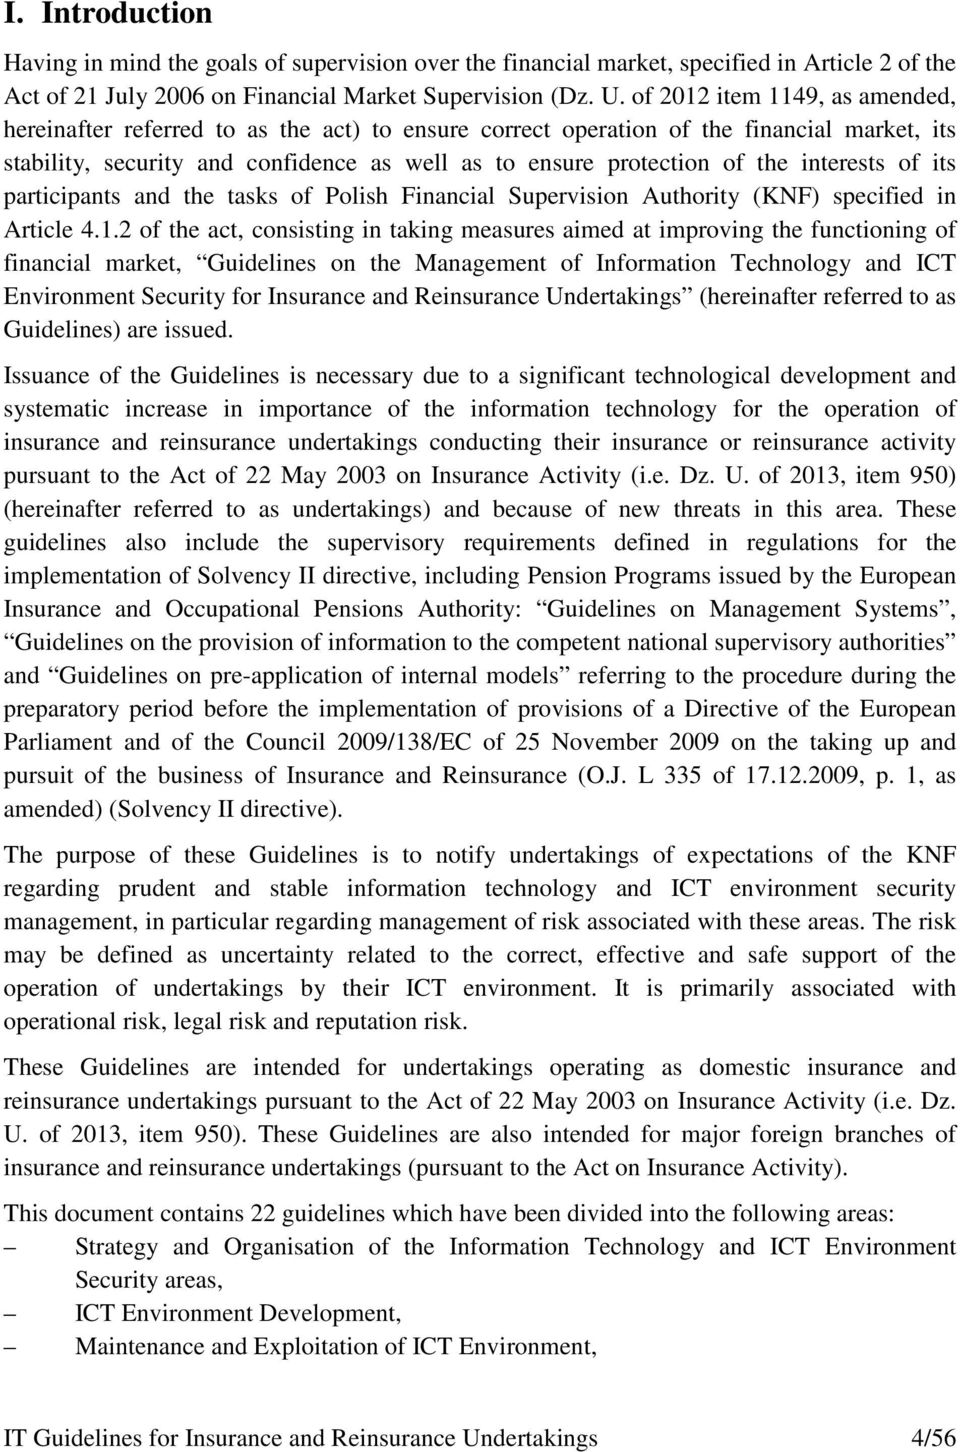 interests of its participants and the tasks of Polish Financial Supervision Authority (KNF) specified in Article 4.1.